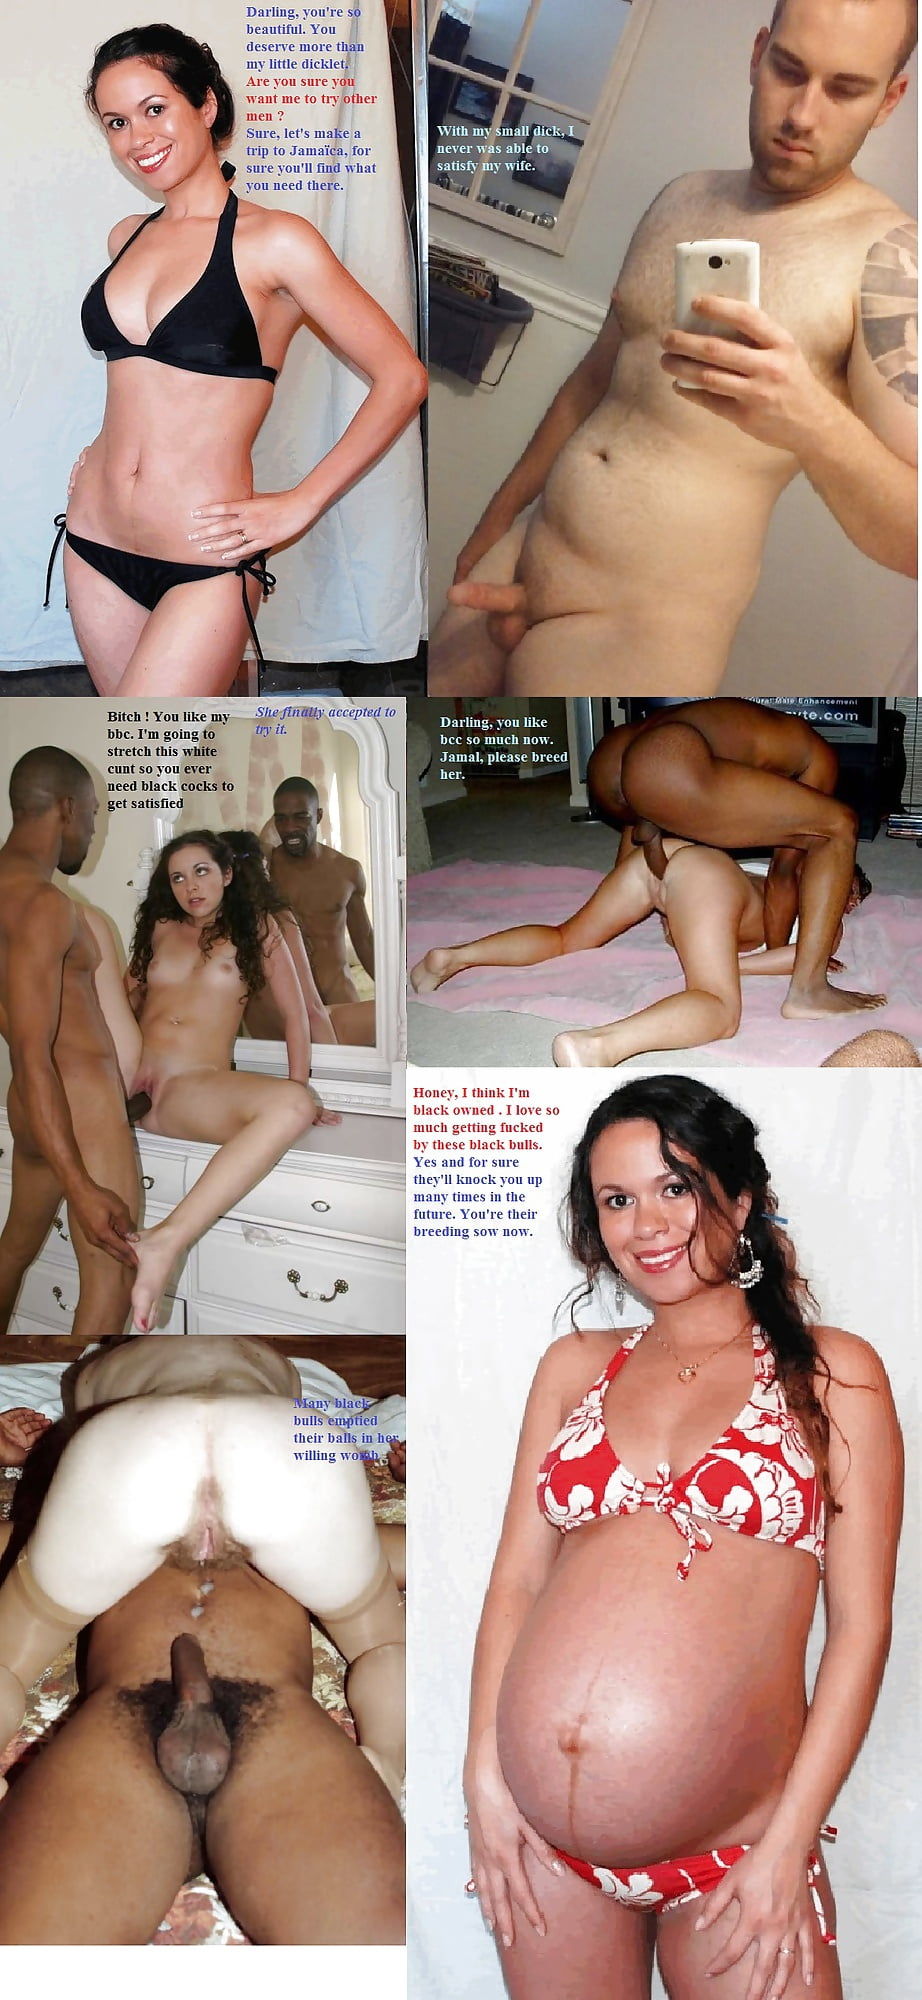 banging-paris-can-you-get-pregnant-without-actually-having-sex